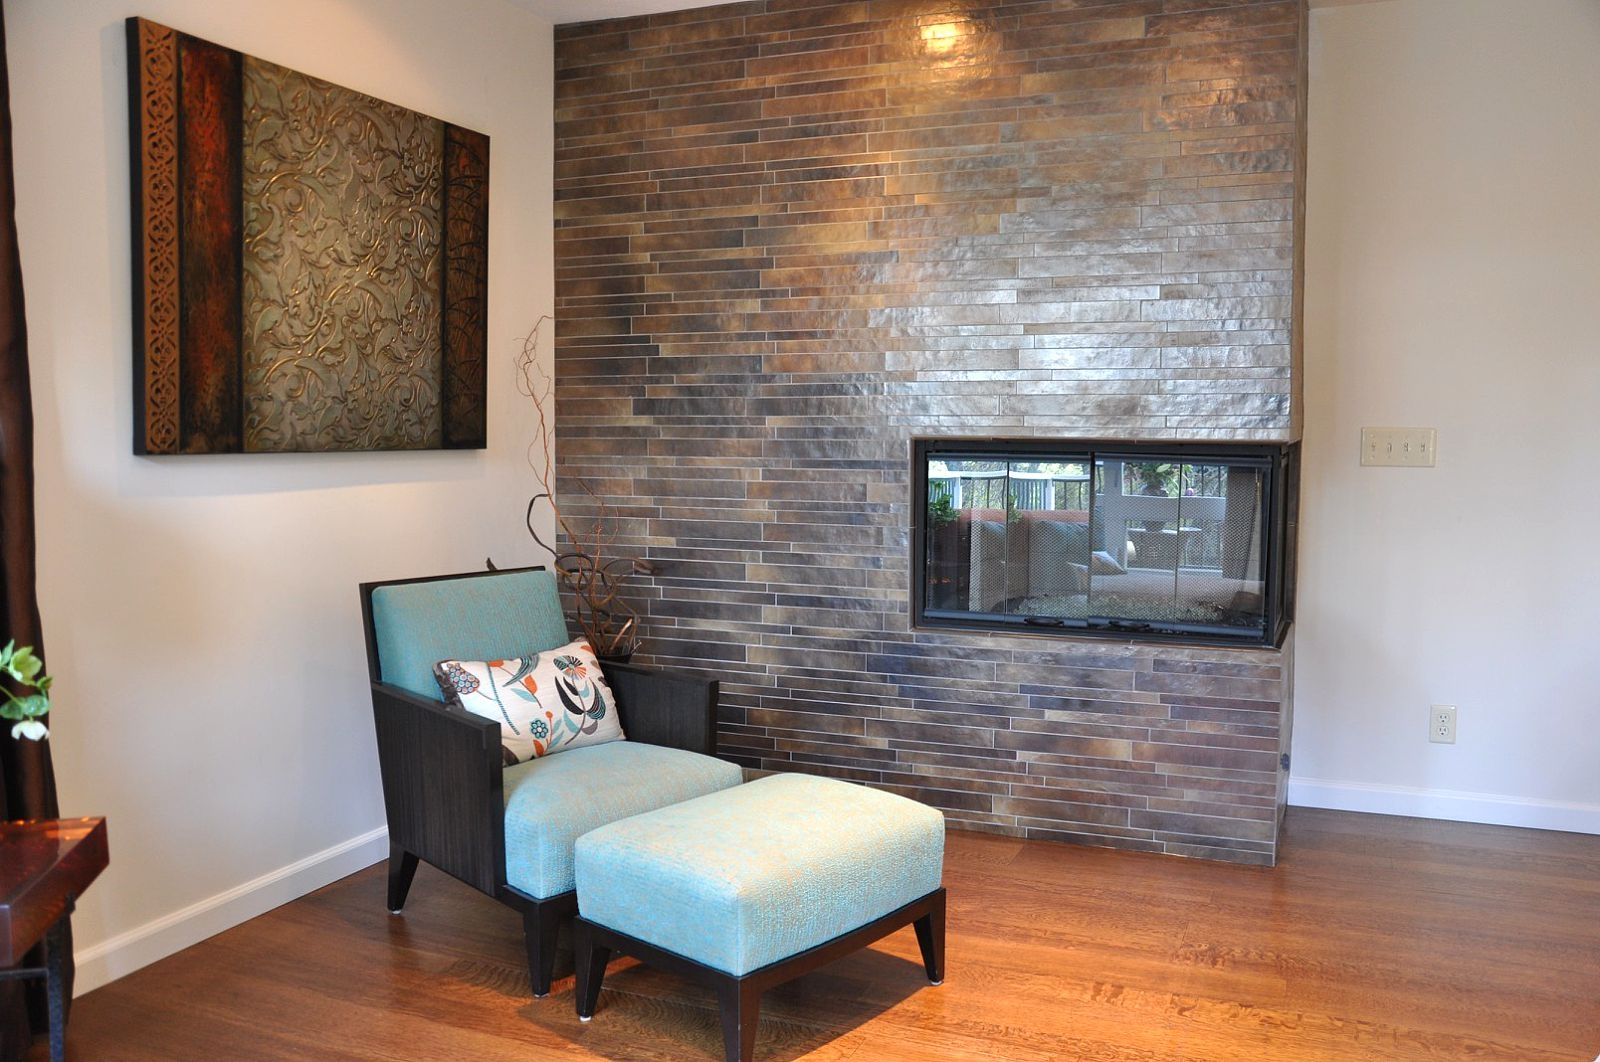 Master bedroom built in fireplace and lounge